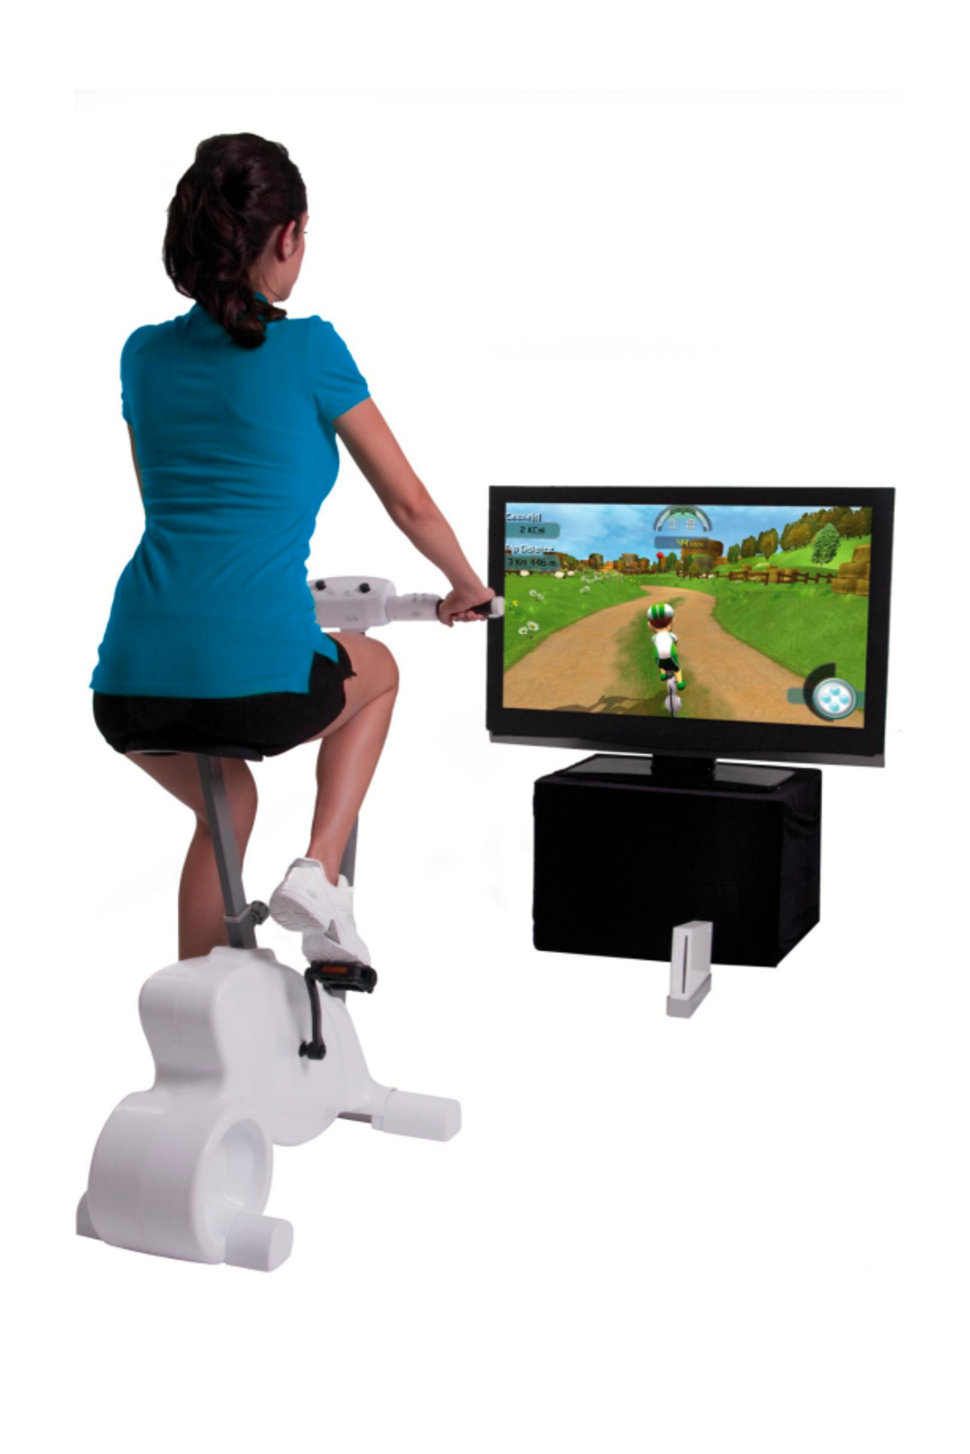 cyberbike brings exercise bike accessory to nintendo wii image 1